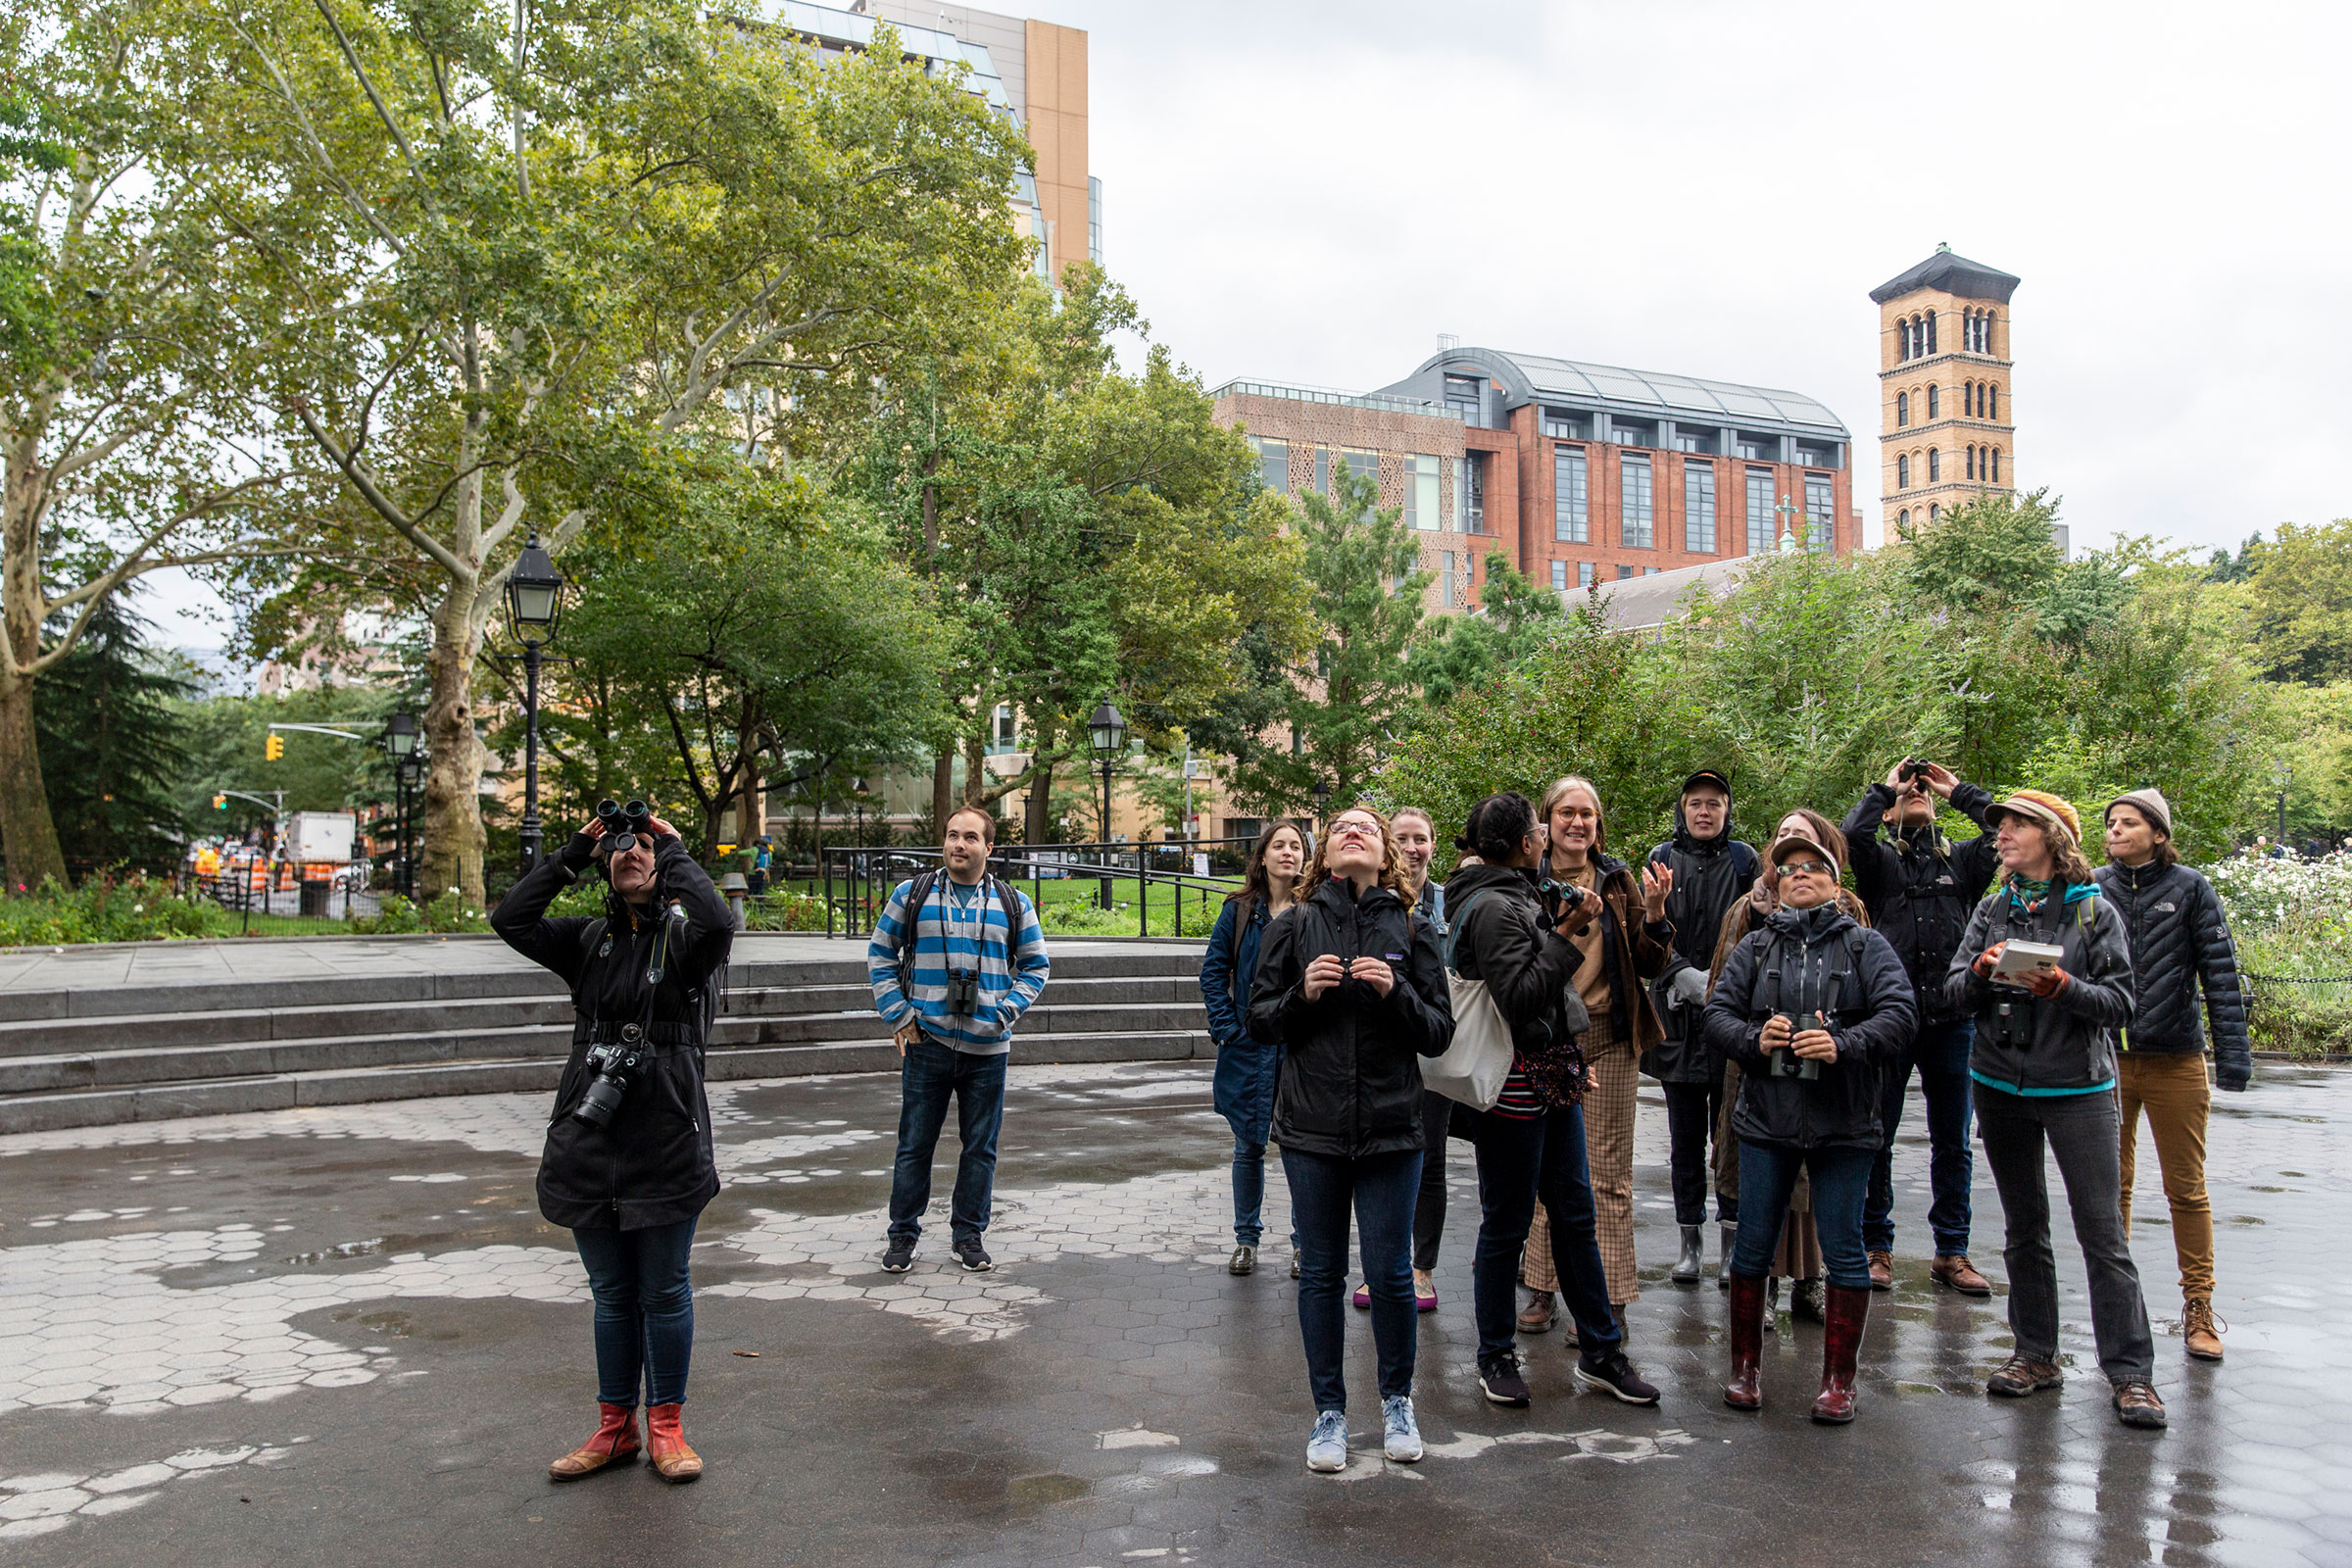 On an October walk in New York City's Washington Square Park, the group recorded the site's first-ever Belted Kingfisher sighting, along with six Brown Creepers and four woodpecker species. Eva Deitch